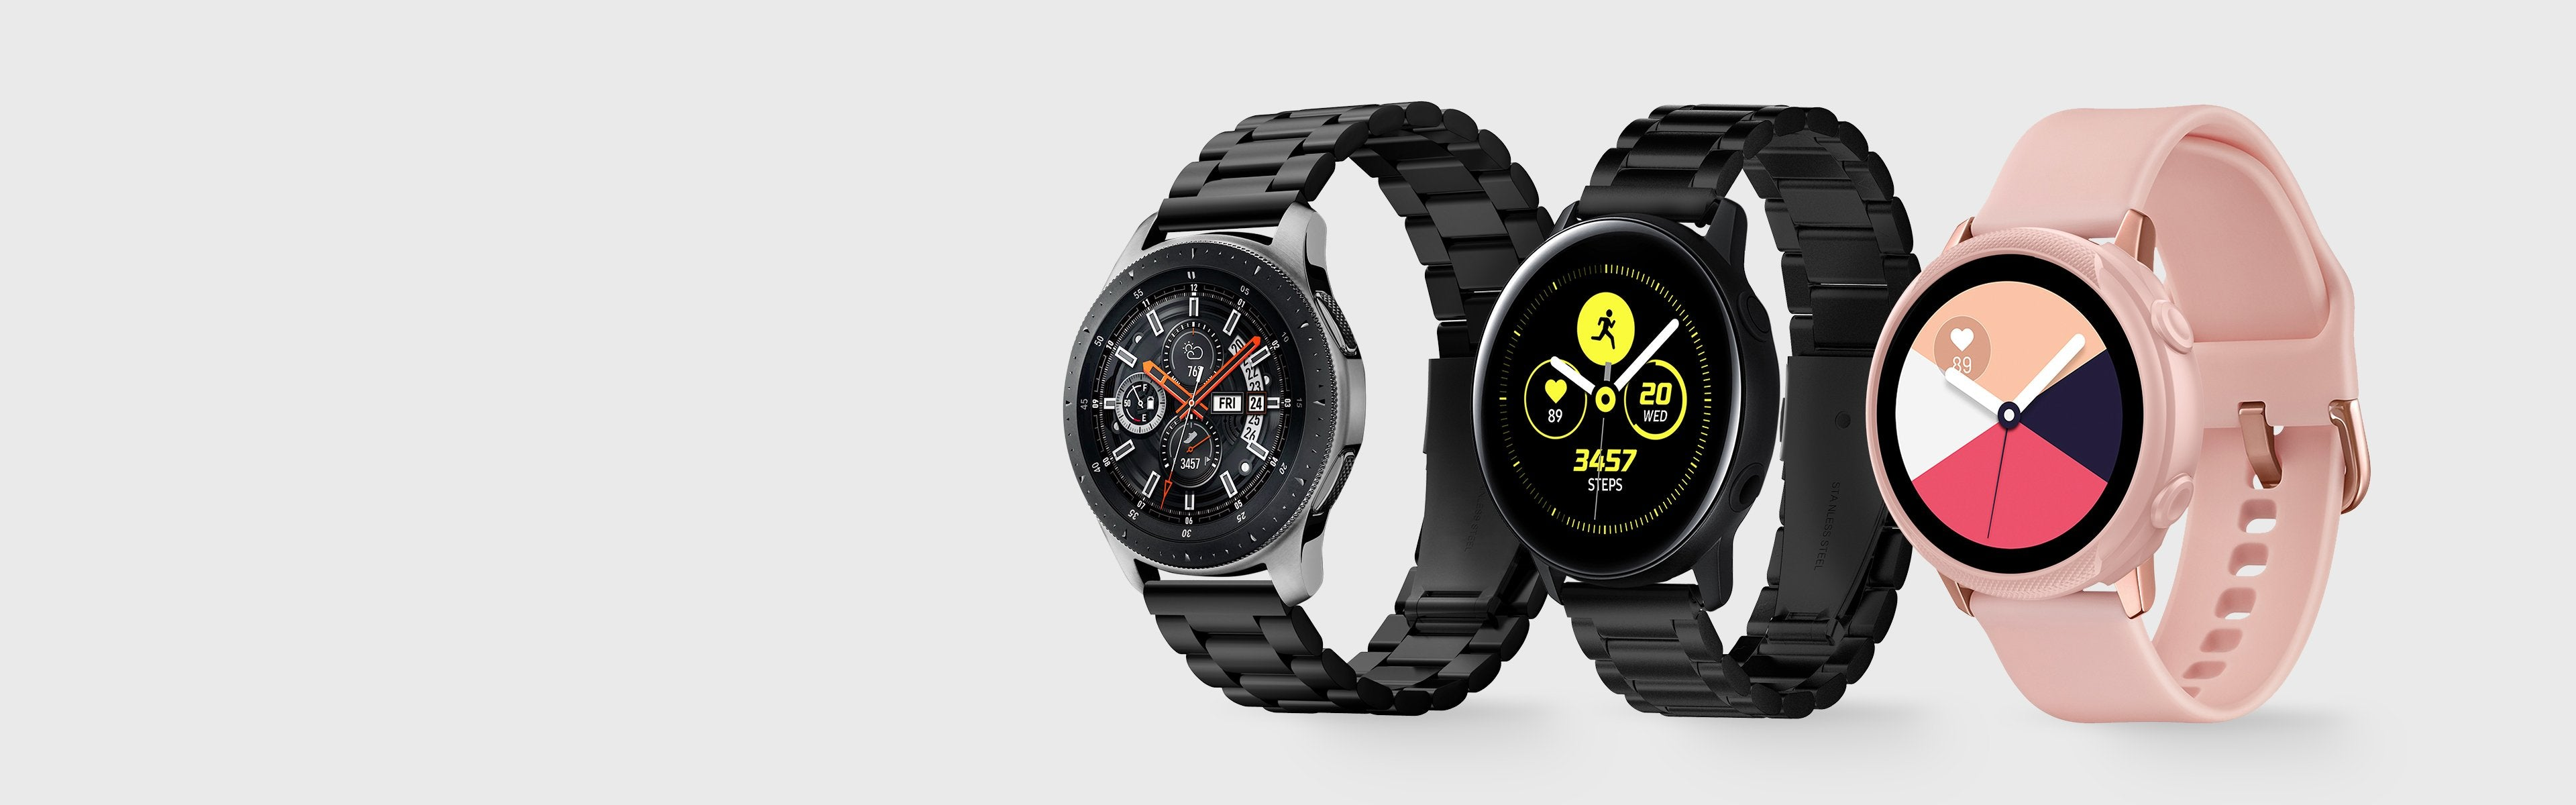 Spigen Cases for Galaxy Watch